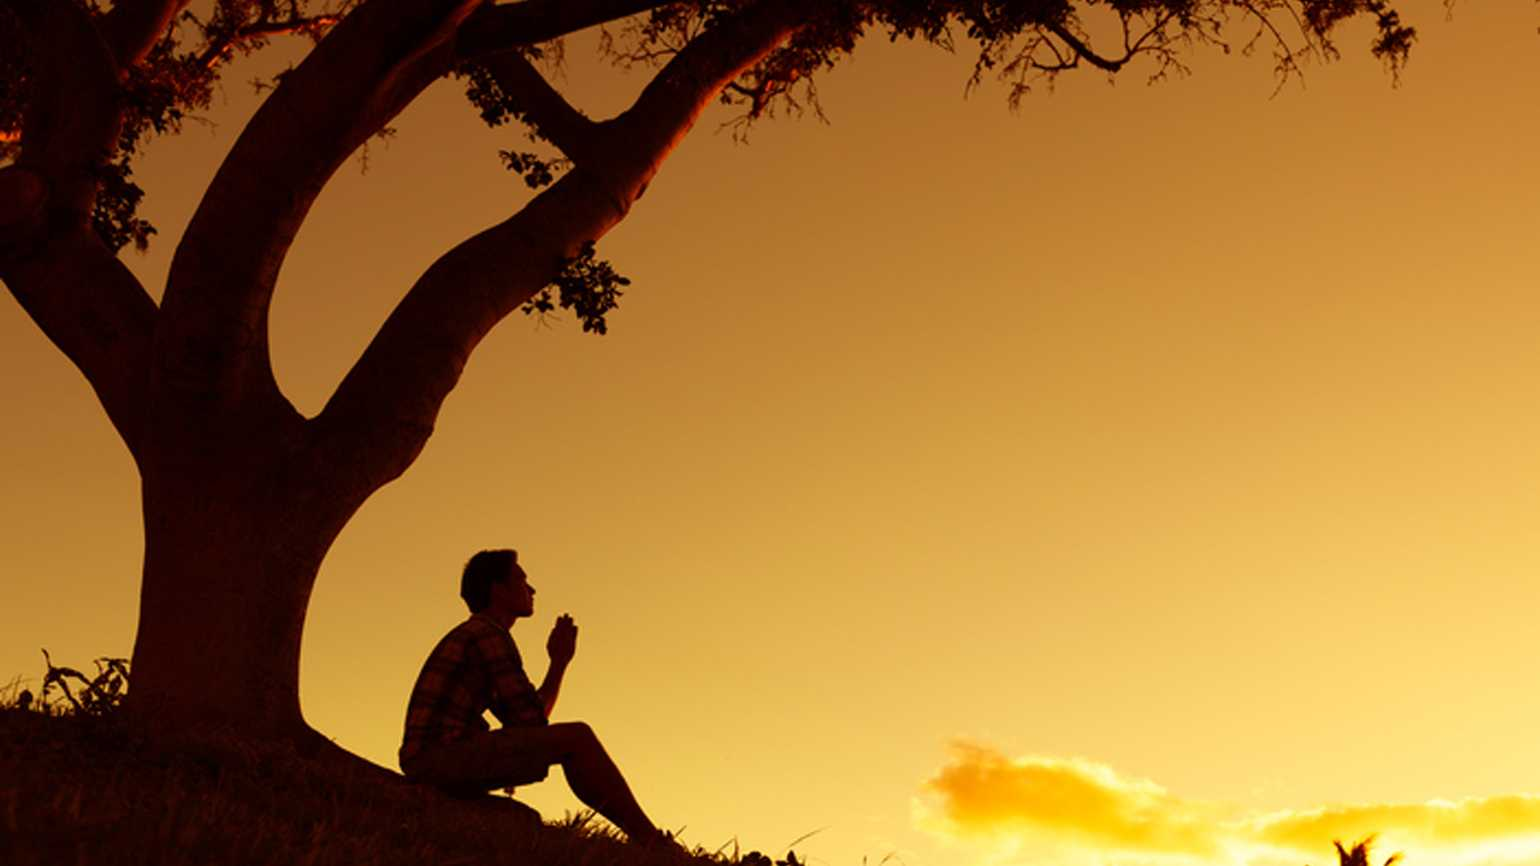 Man under a tree looking up to God in prayer.